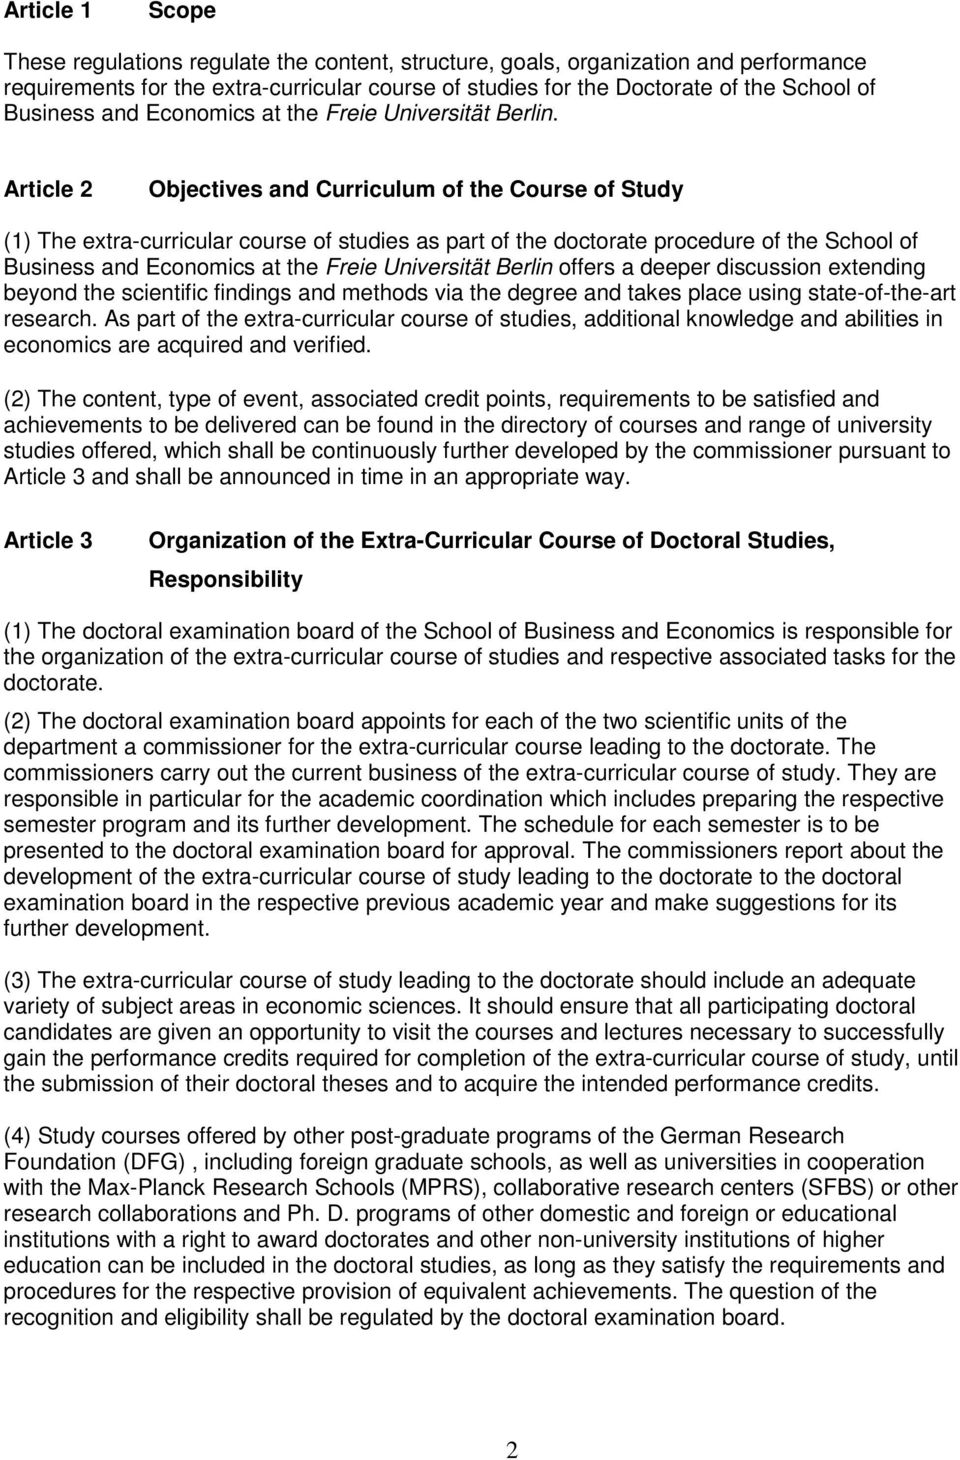 Article 2 Objectives and Curriculum of the Course of Study (1) The extra-curricular course of studies as part of the doctorate procedure of the School of Business and Economics at the Freie